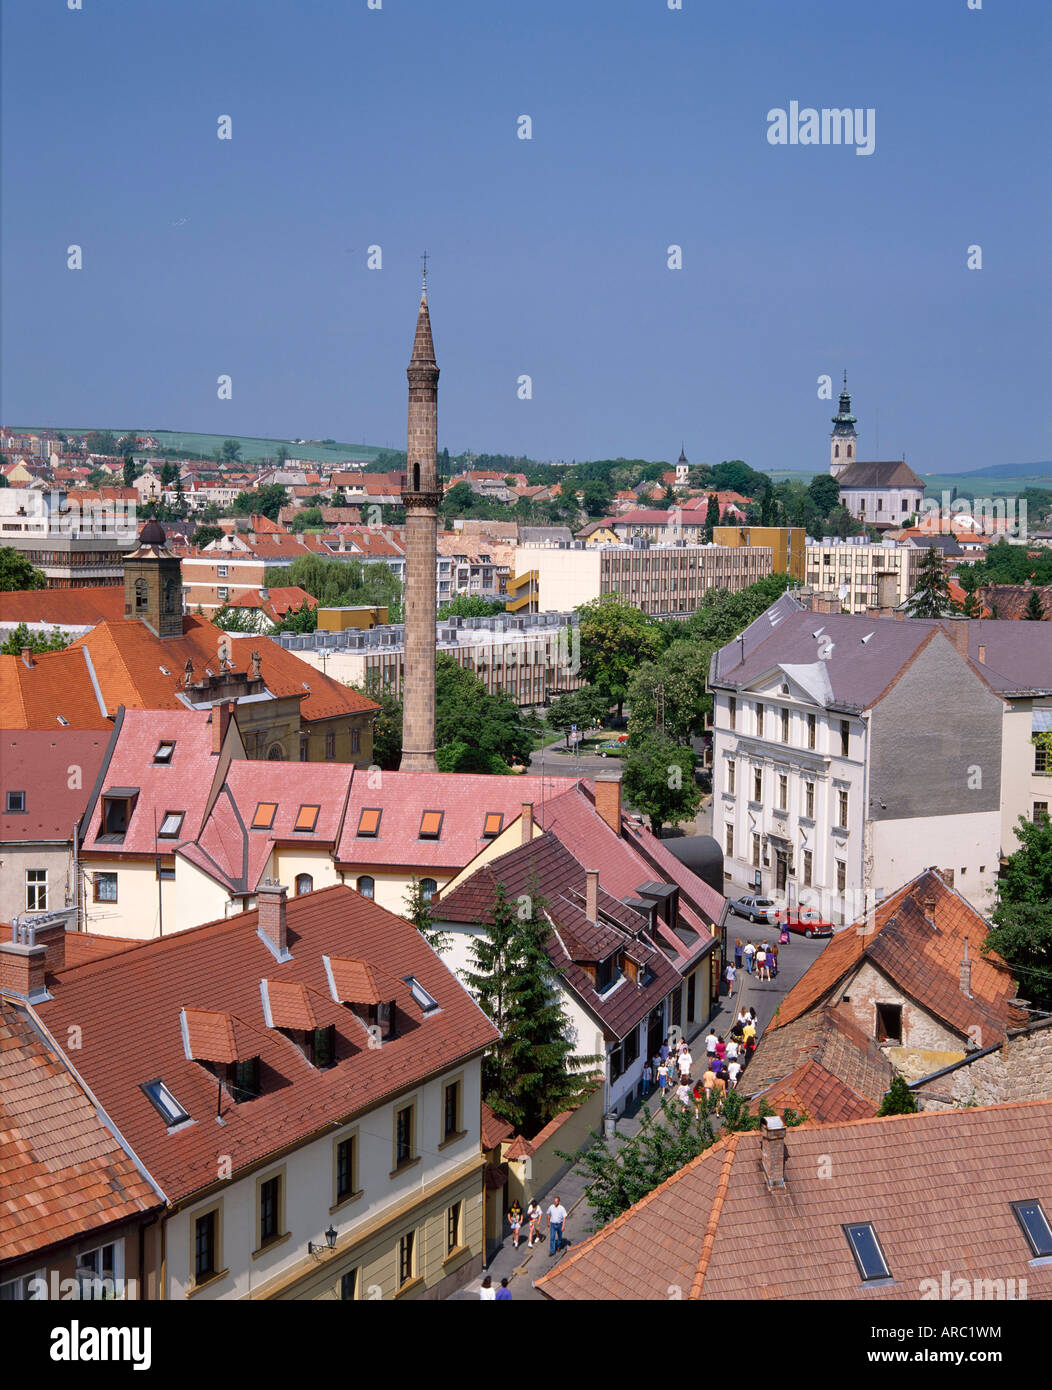 Houses, the Turkish minaret, and churches in the town of Eger, Hungary - Stock Image